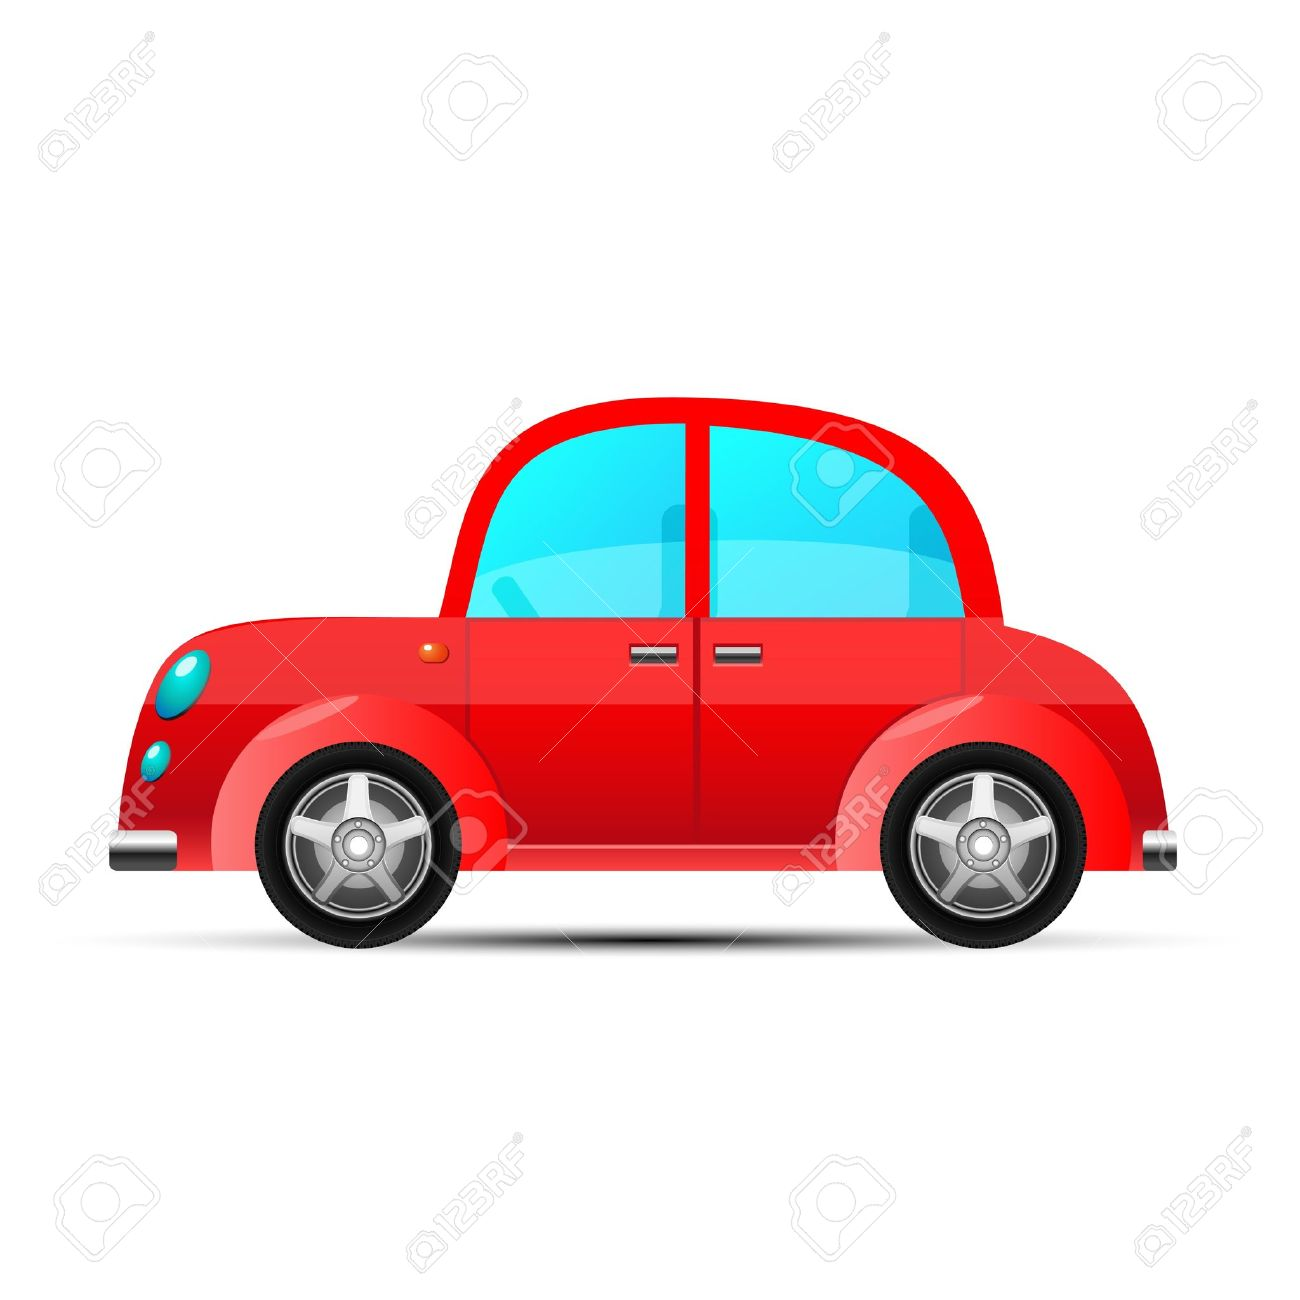 red car, vector - 10673583